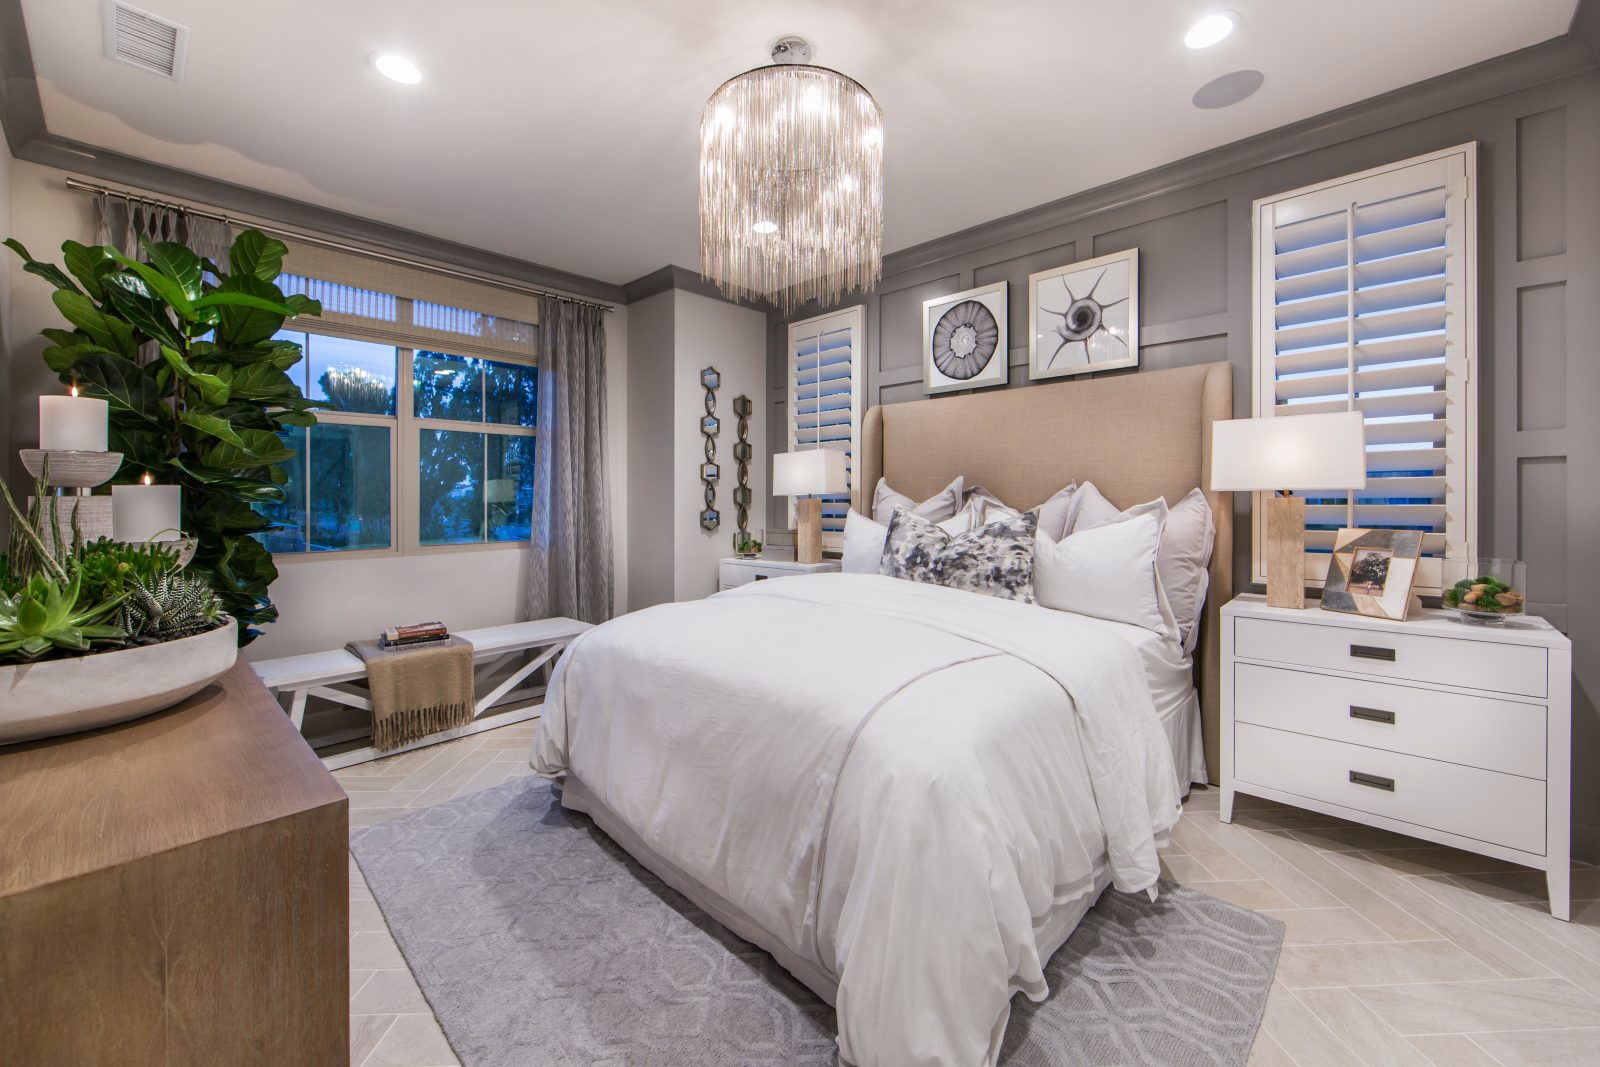 Luxury Townhomes In Irvine Ca Delano At Eastwood Village